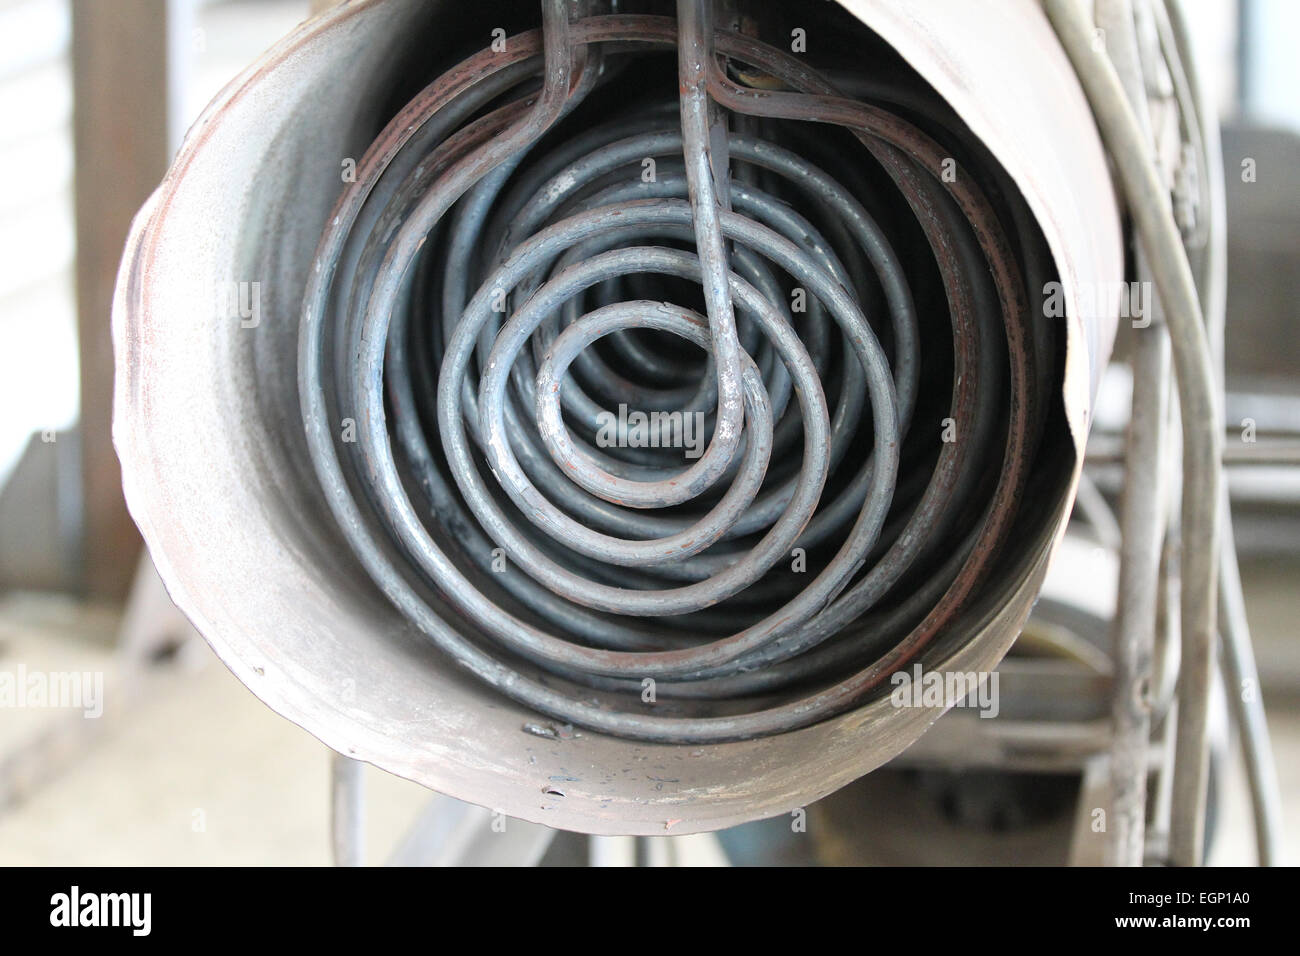 Heating Coil Stock Photos & Heating Coil Stock Images - Alamy